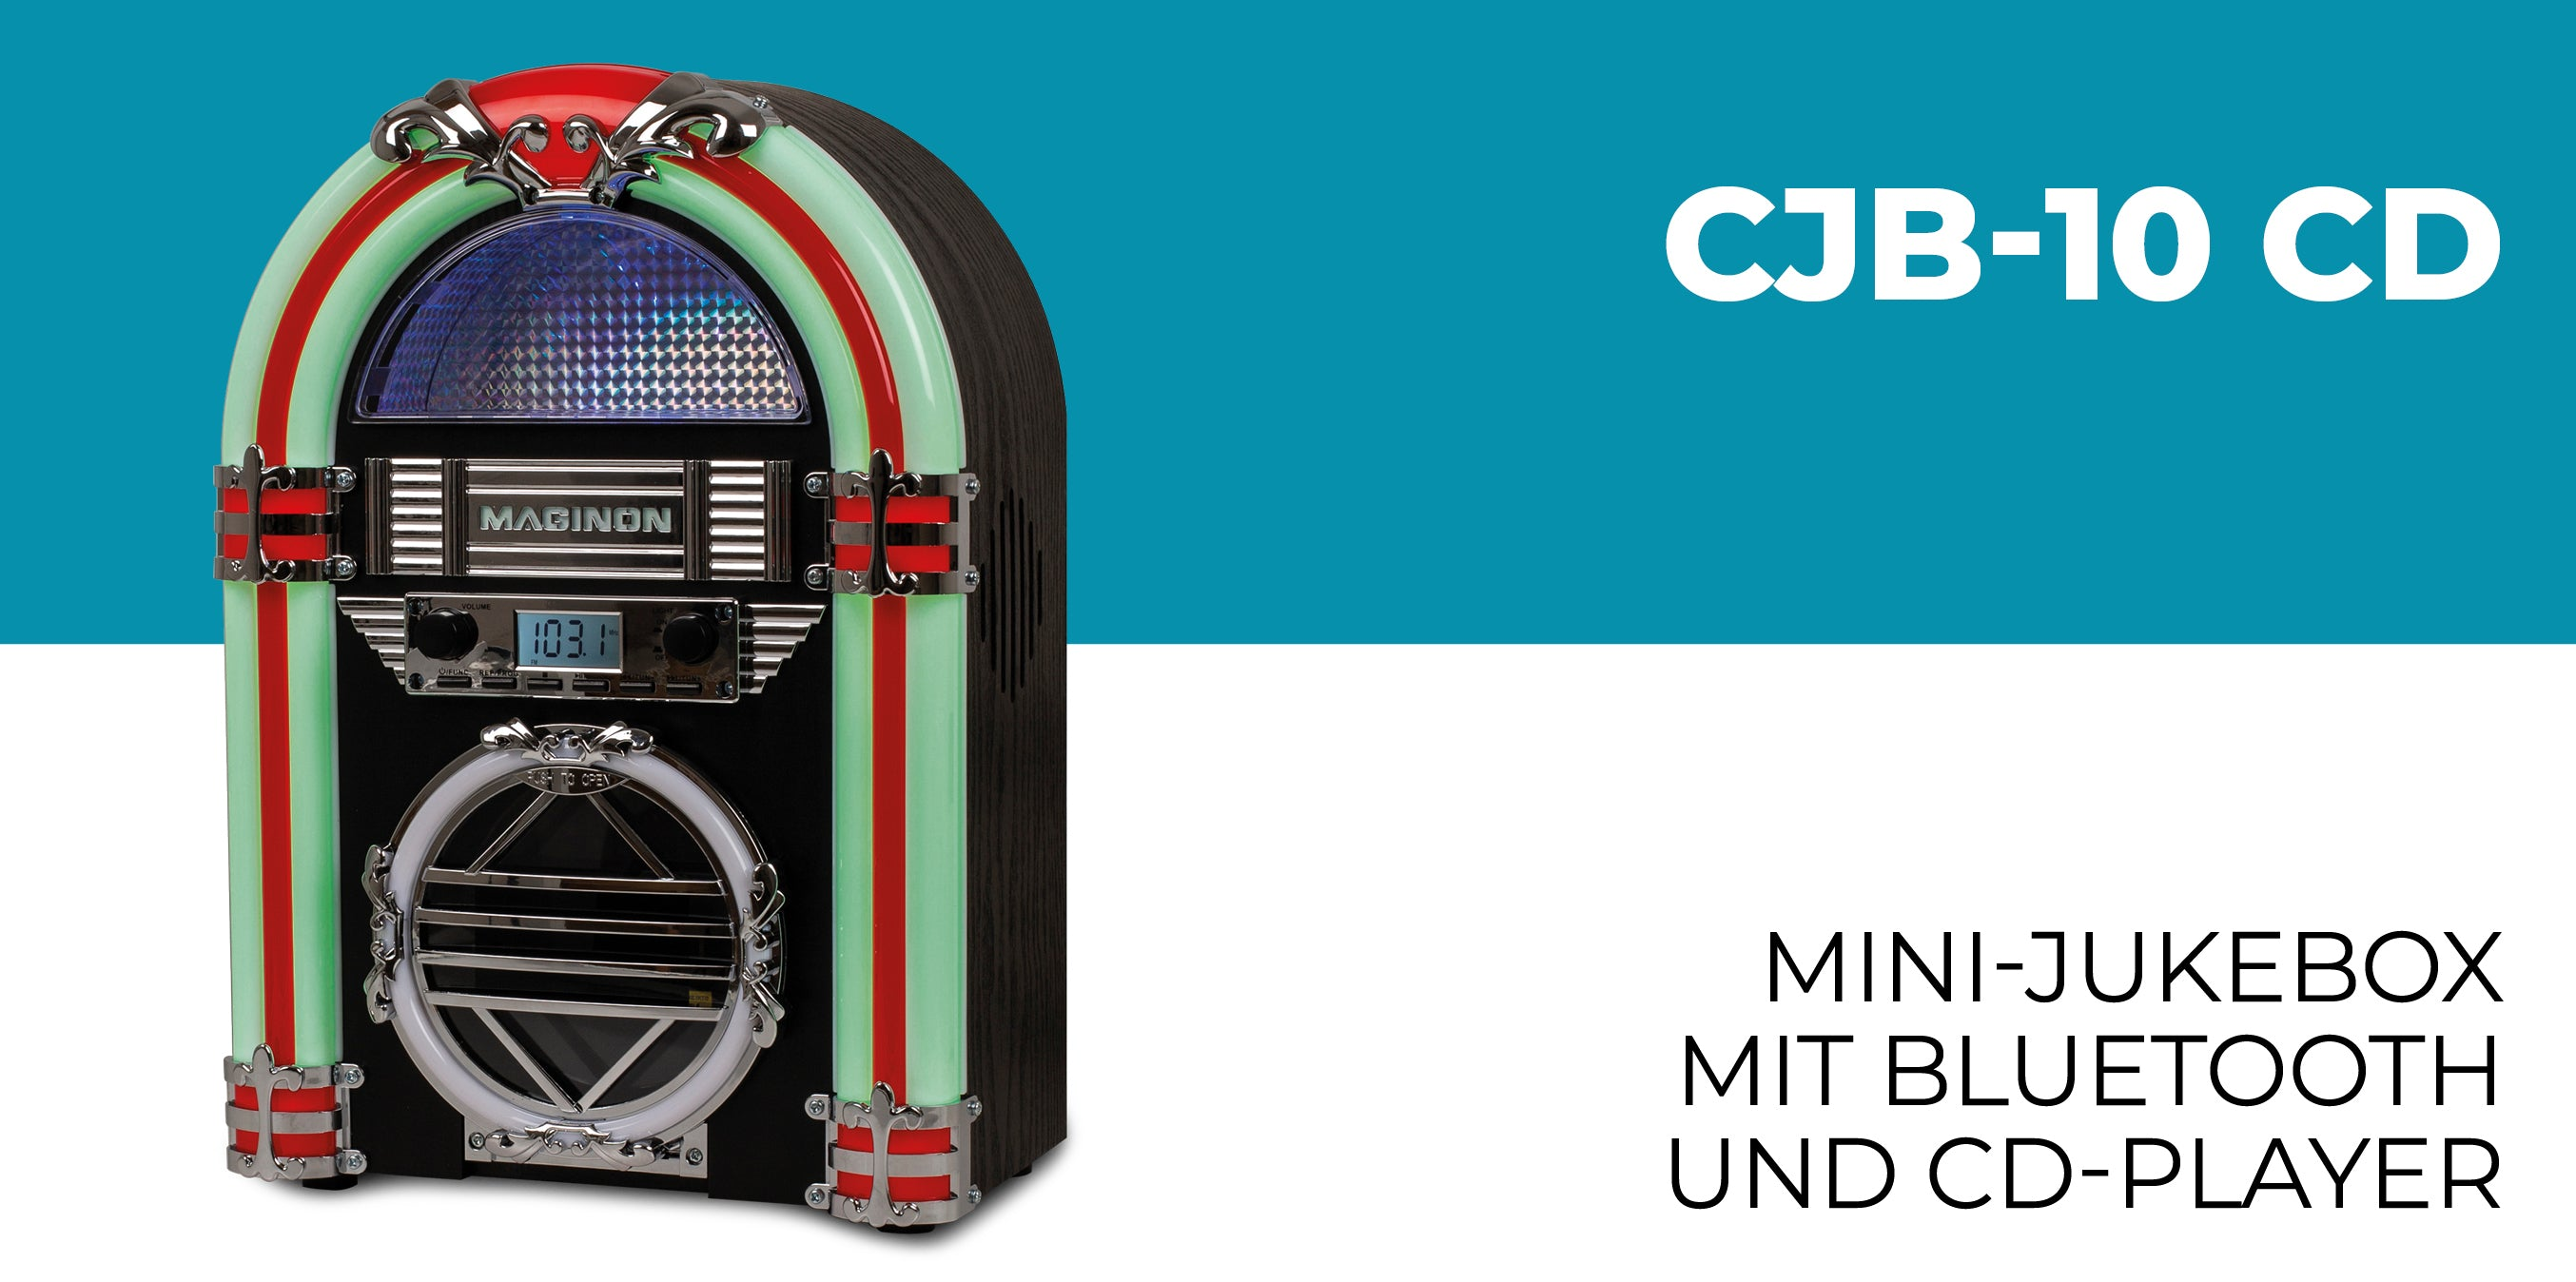 Maginon CJB-10 CD Jukebox